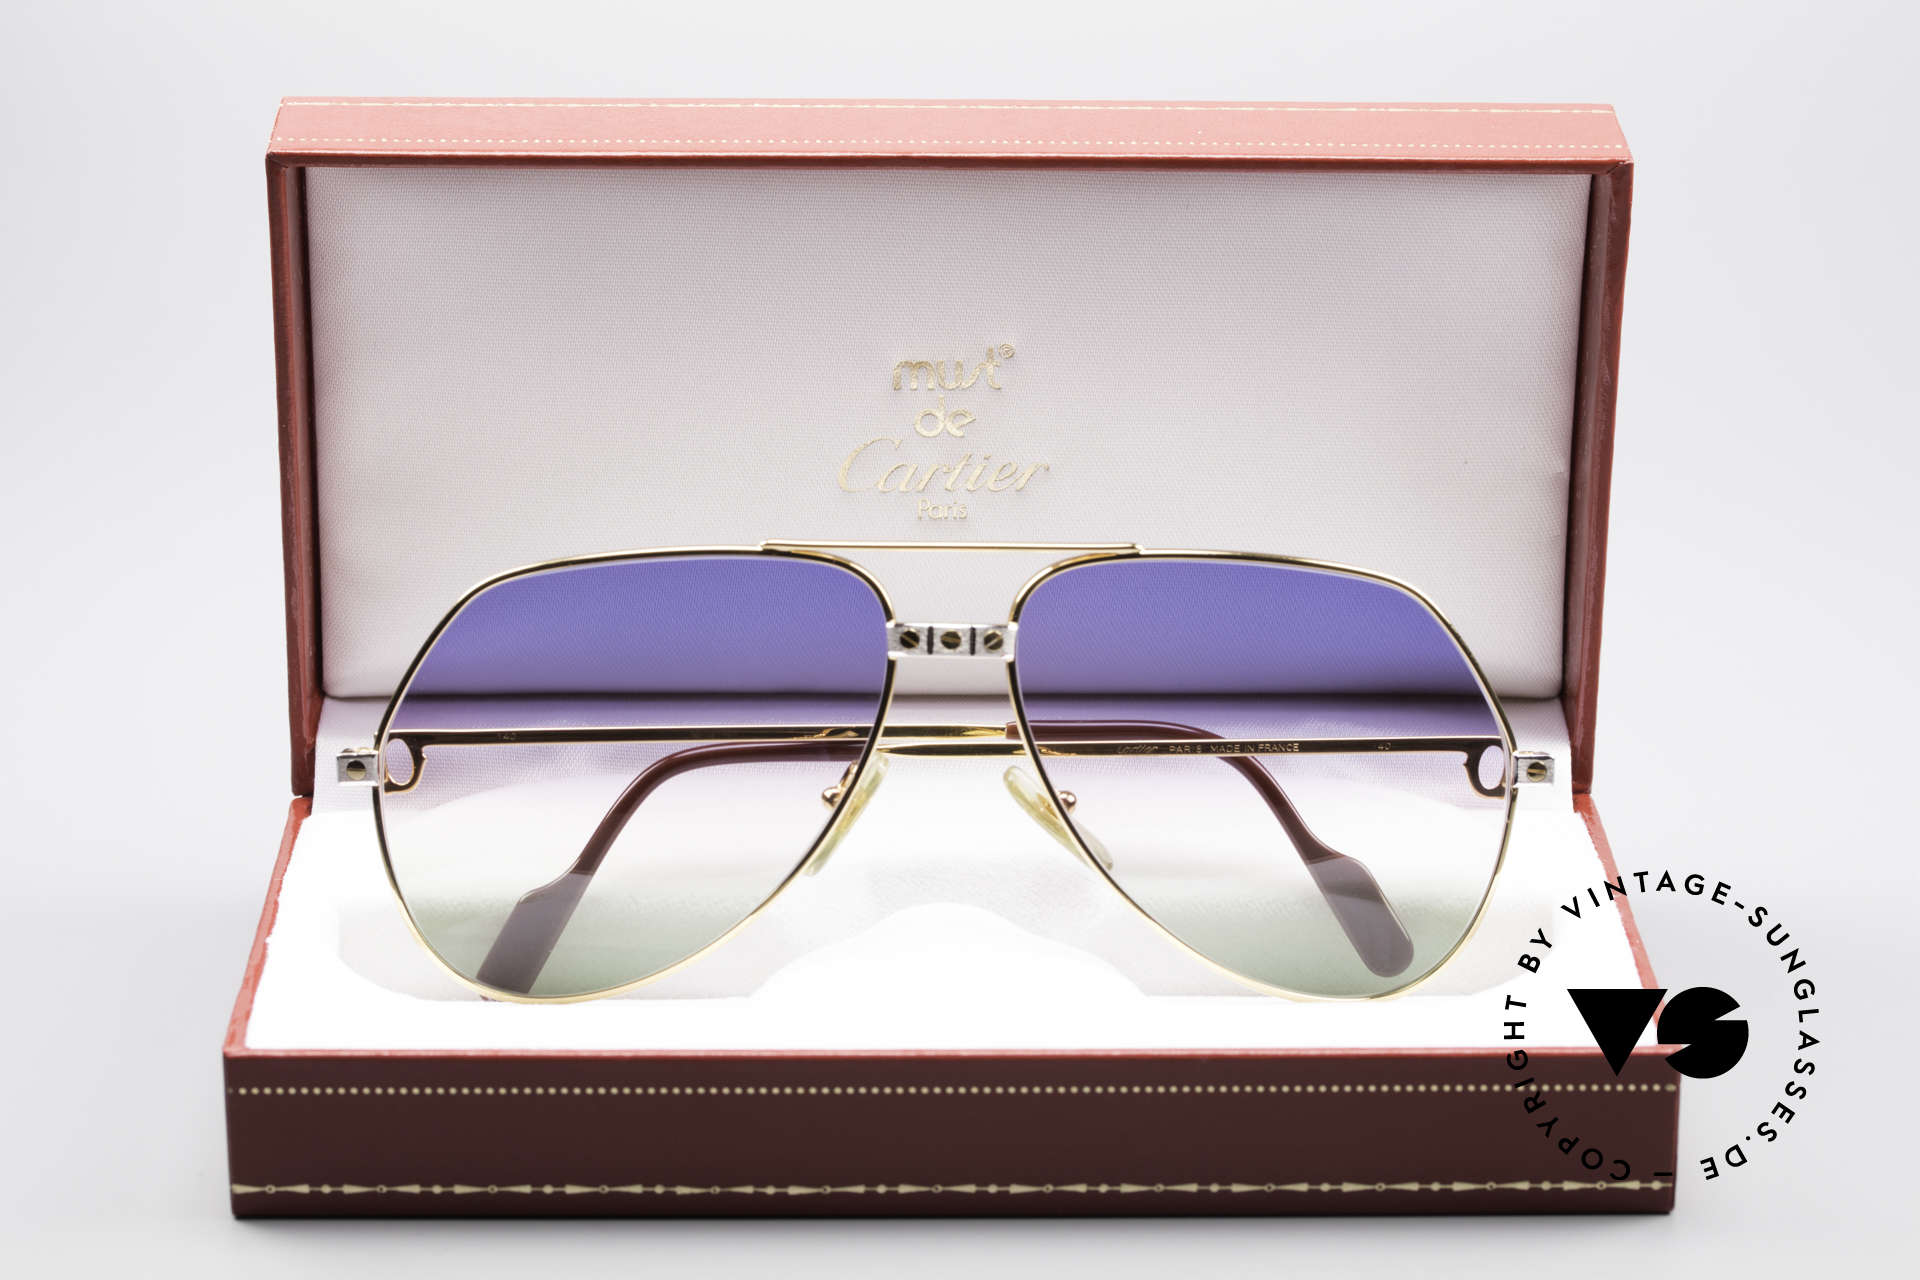 Cartier Vendome Santos - L Rare Luxury 80's Sunglasses, with extremely rare customized sun lenses (100% UV), Made for Men